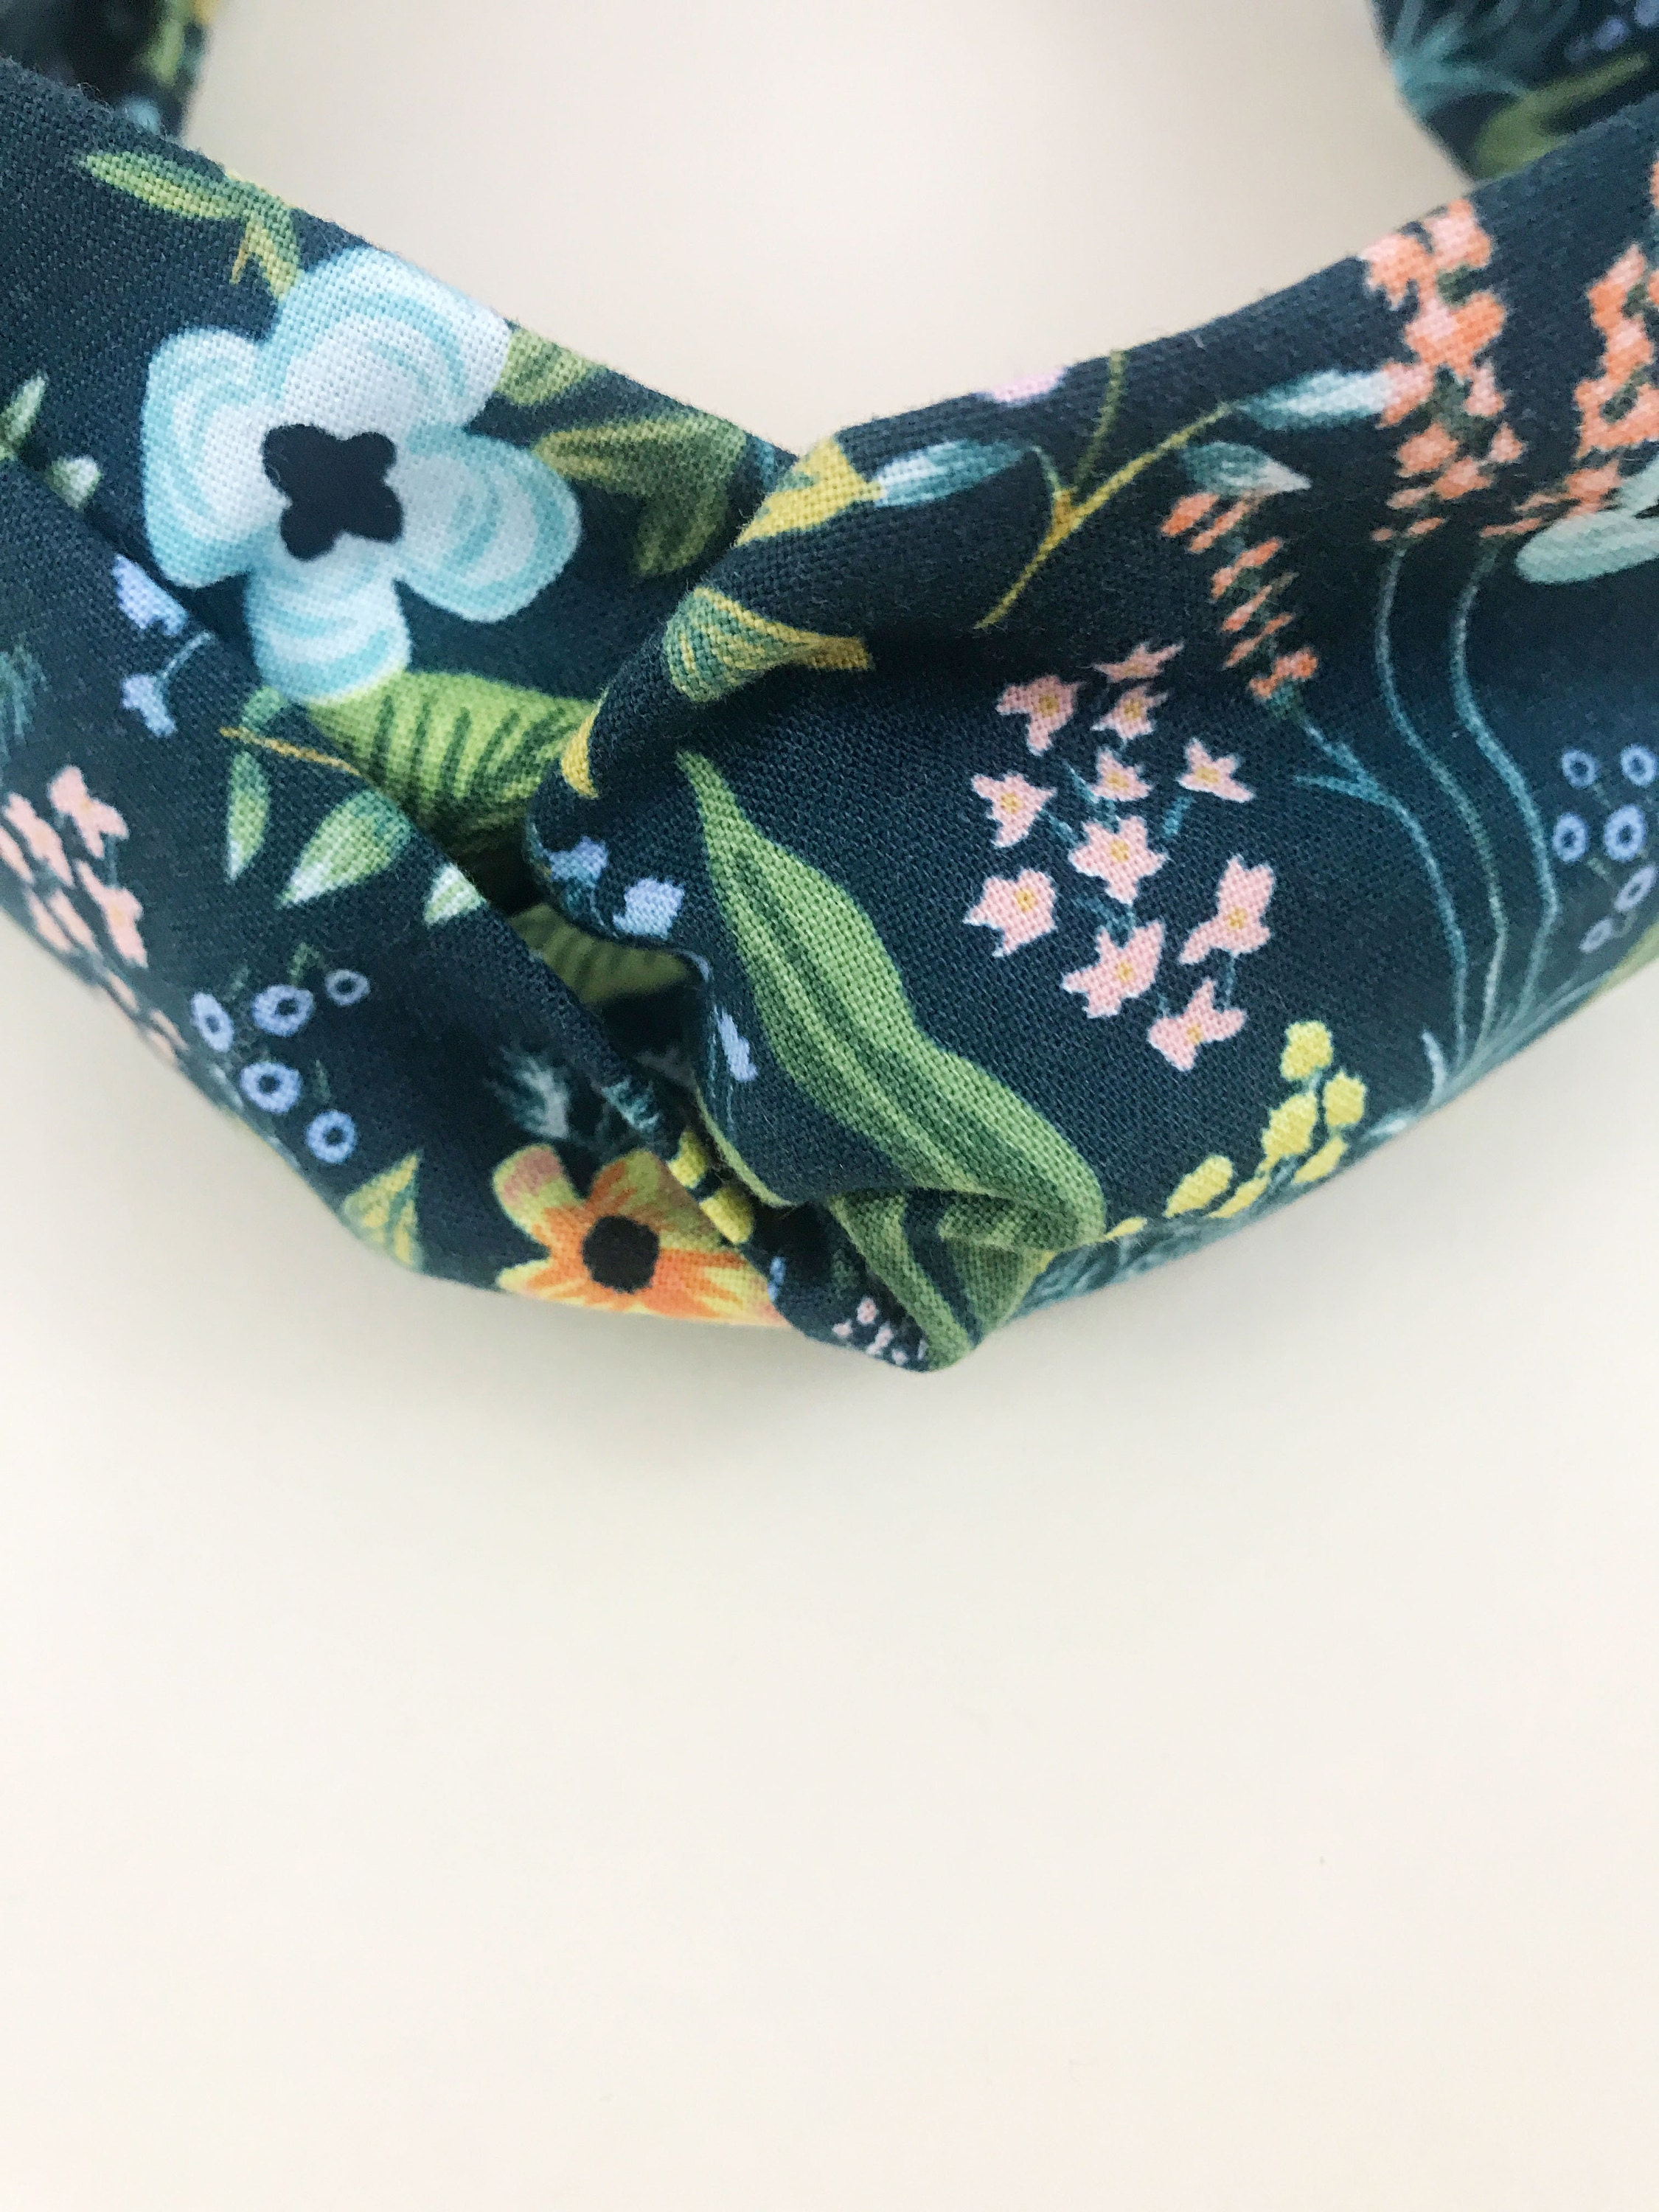 Navy blue floral twisted headbands.